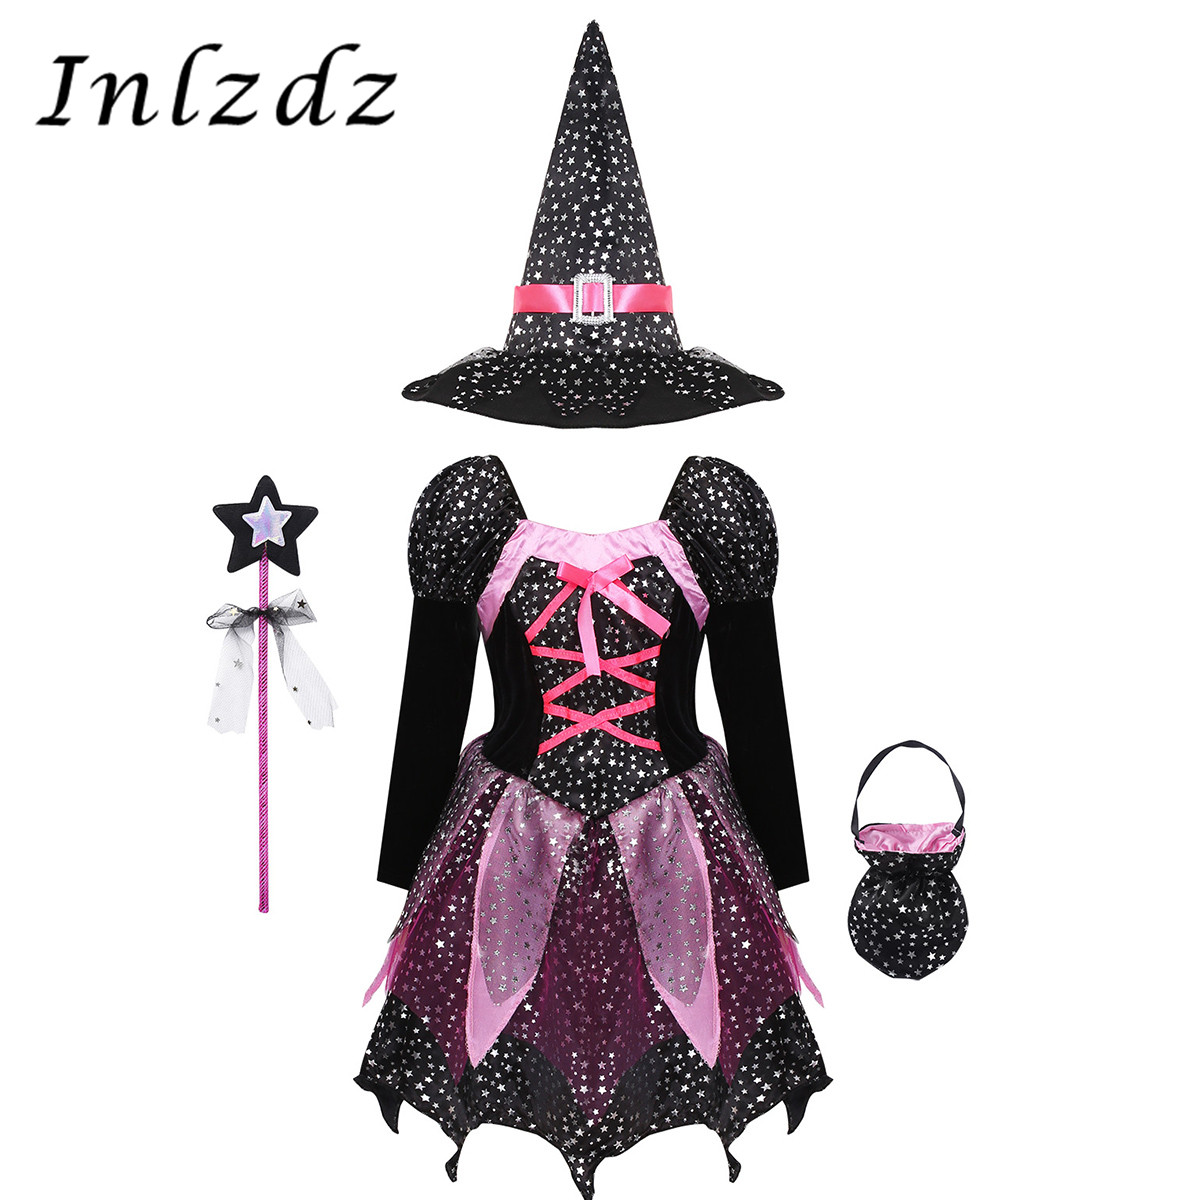 Kids Girls Witch Fancy Carnival Cosplay Costumes Silver Stars Dress with Pointed Hat Wand Candy Bag Set Witches Halloween Outfit